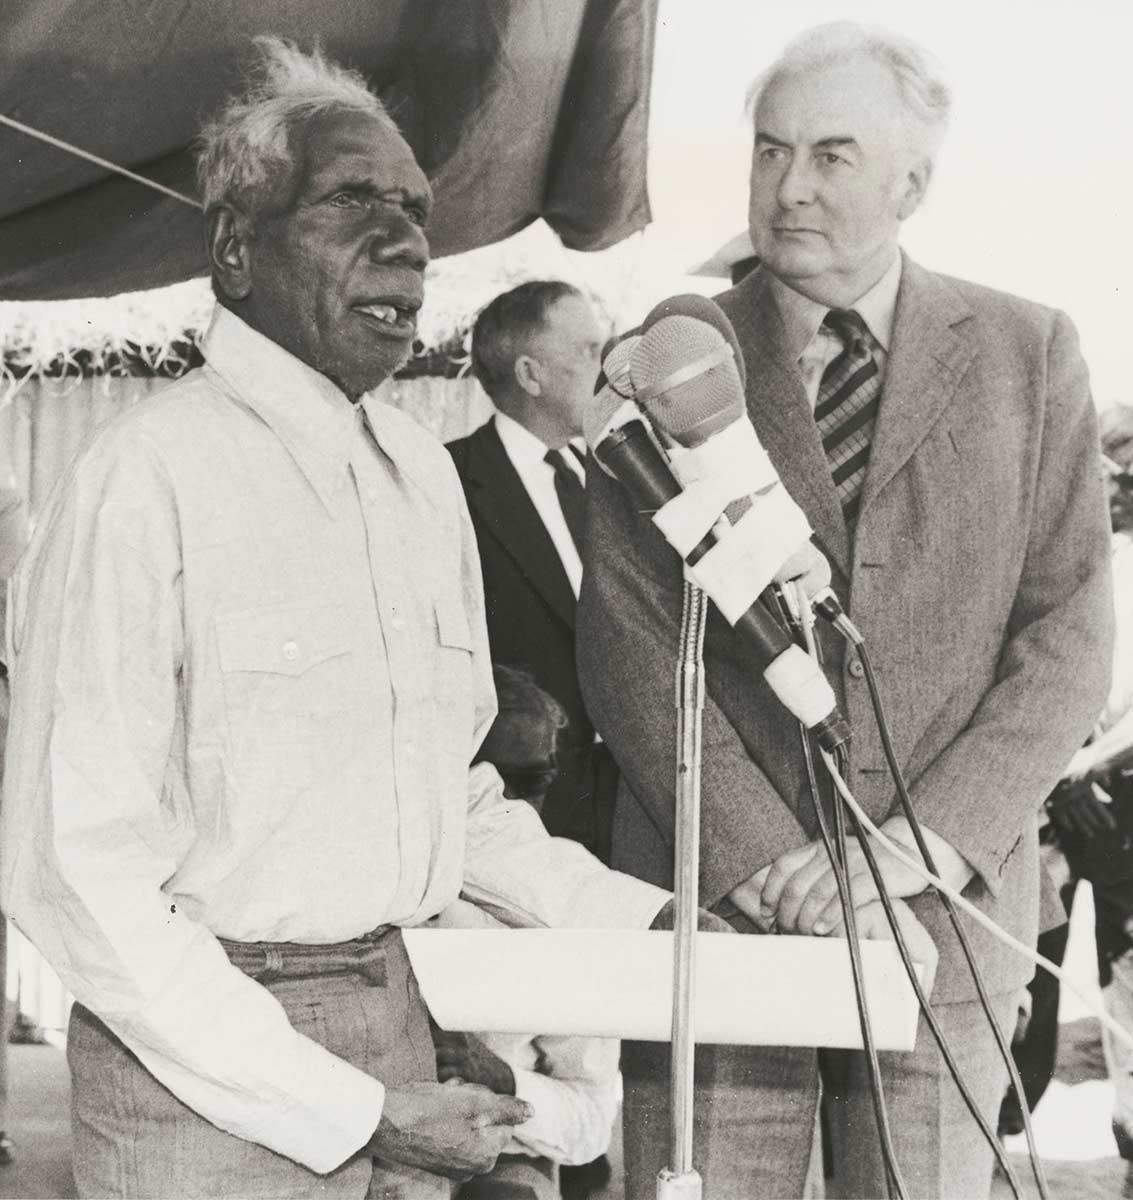 Two men standing at a microphone. - click to view larger image